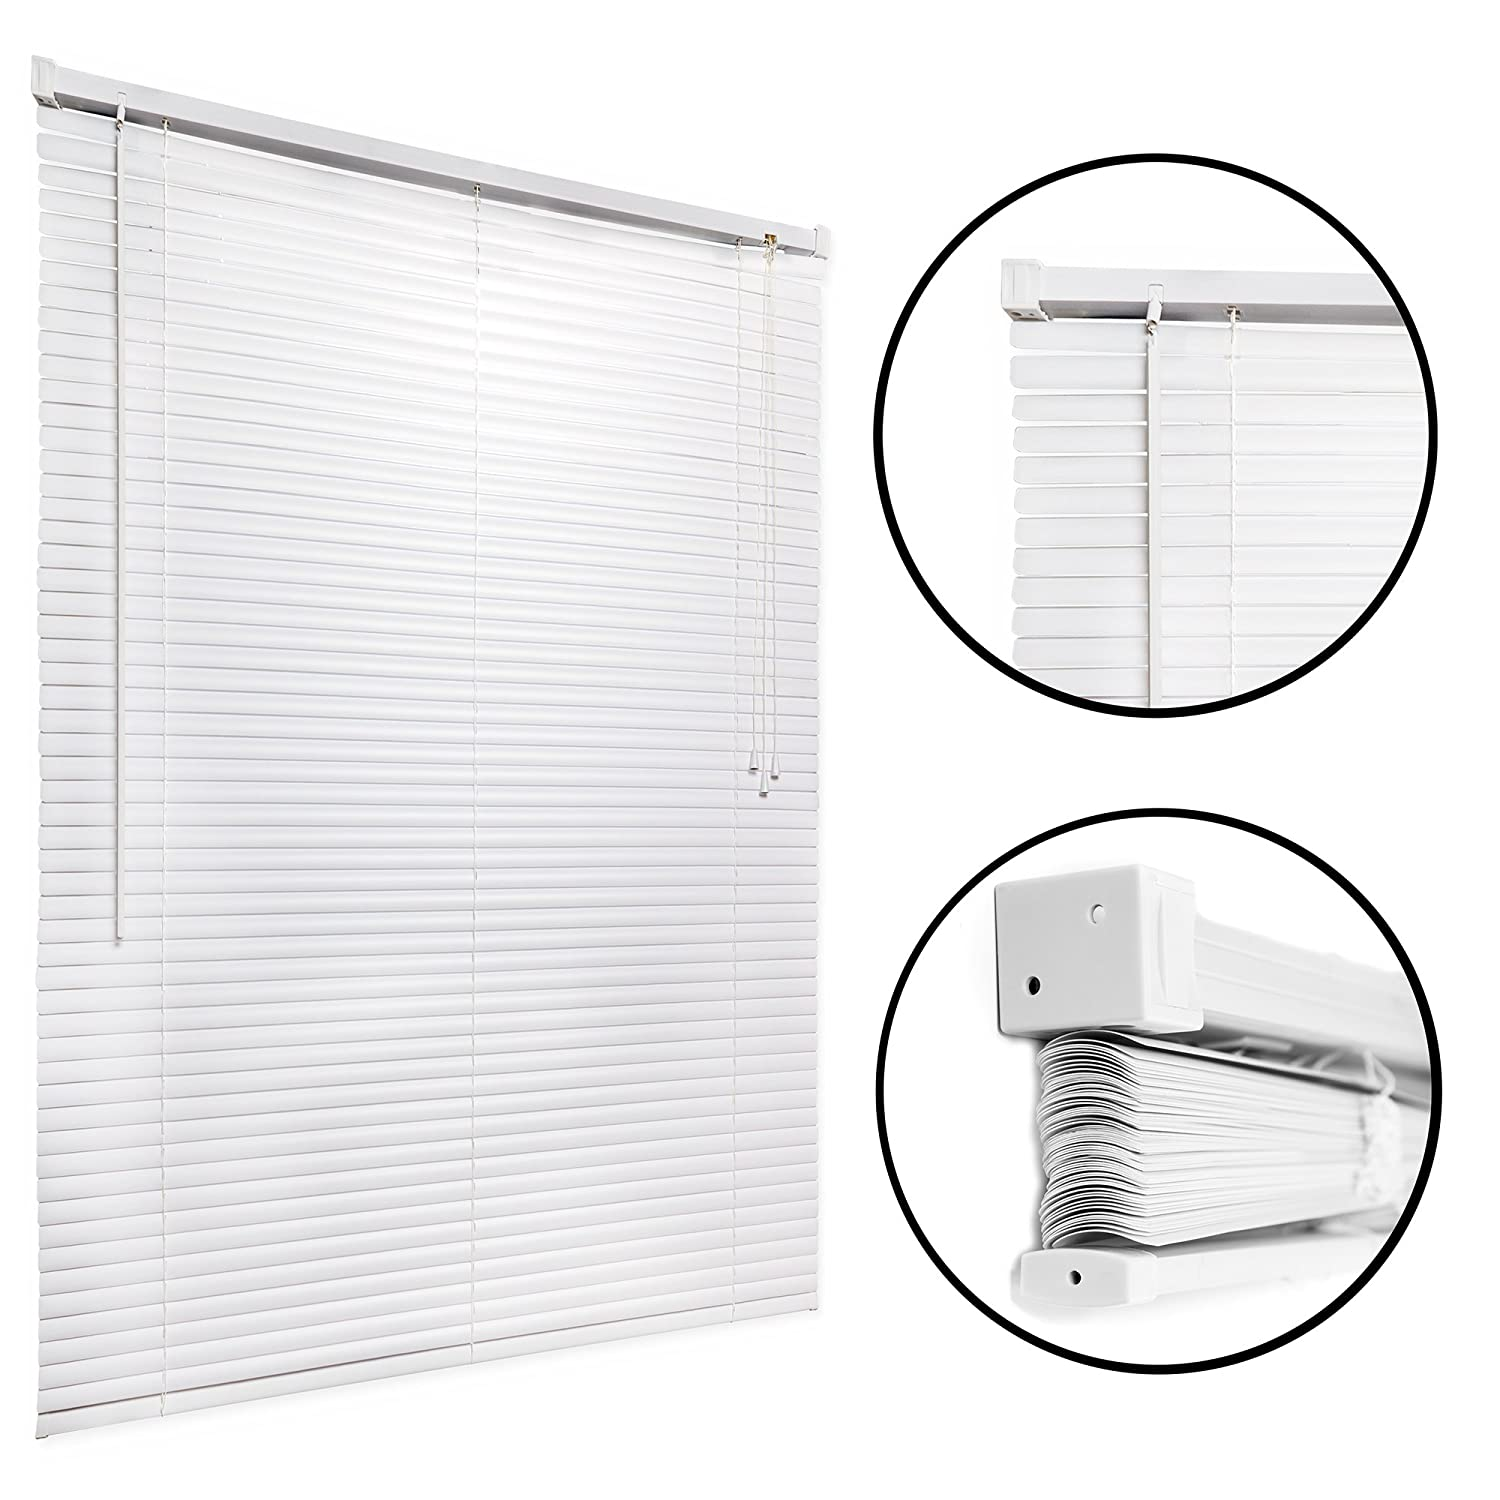 "Vinyl, Mini Window Blinds and Sun Shades (White, 27"" x 64"") - Easy to Install Kitchen, Home, Office Windows Shade with Pull Cord - Classic Style for Stationary or Sliding Frames - by Huntington"